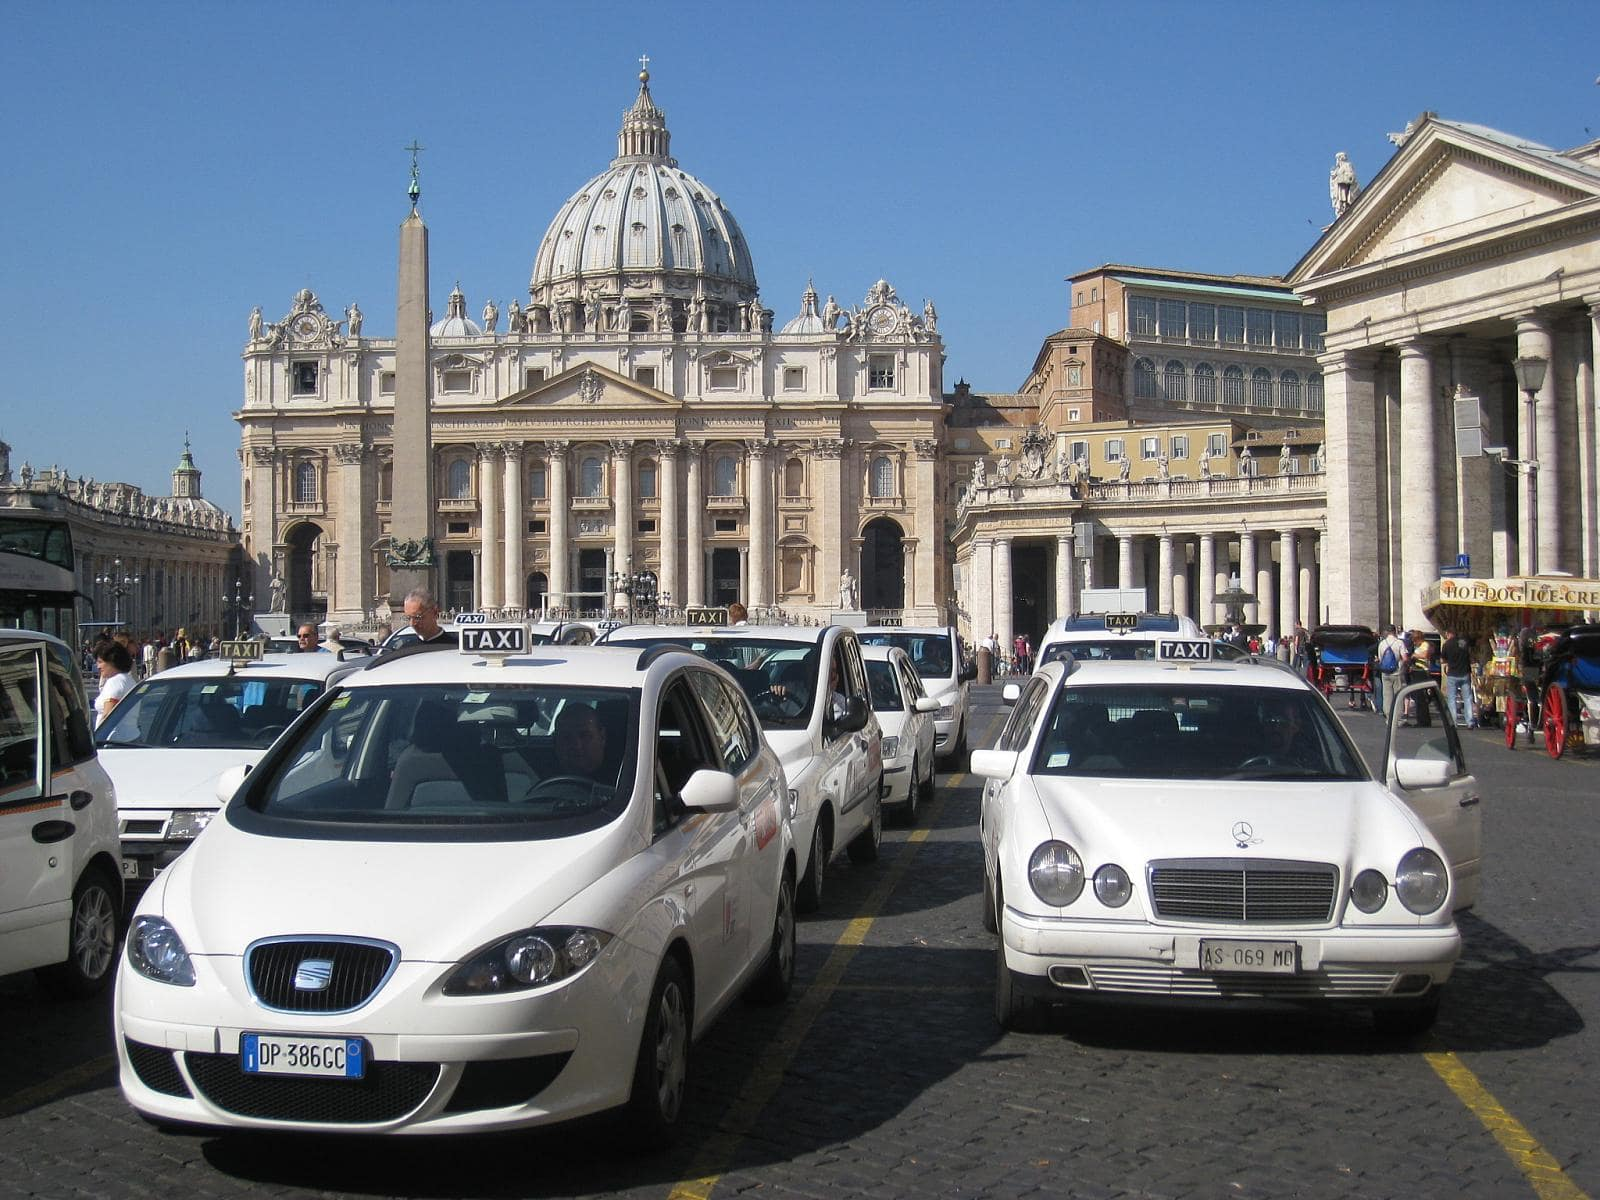 One thing to know about transportation in Italy is that while taxis are a good options, Uber isn't